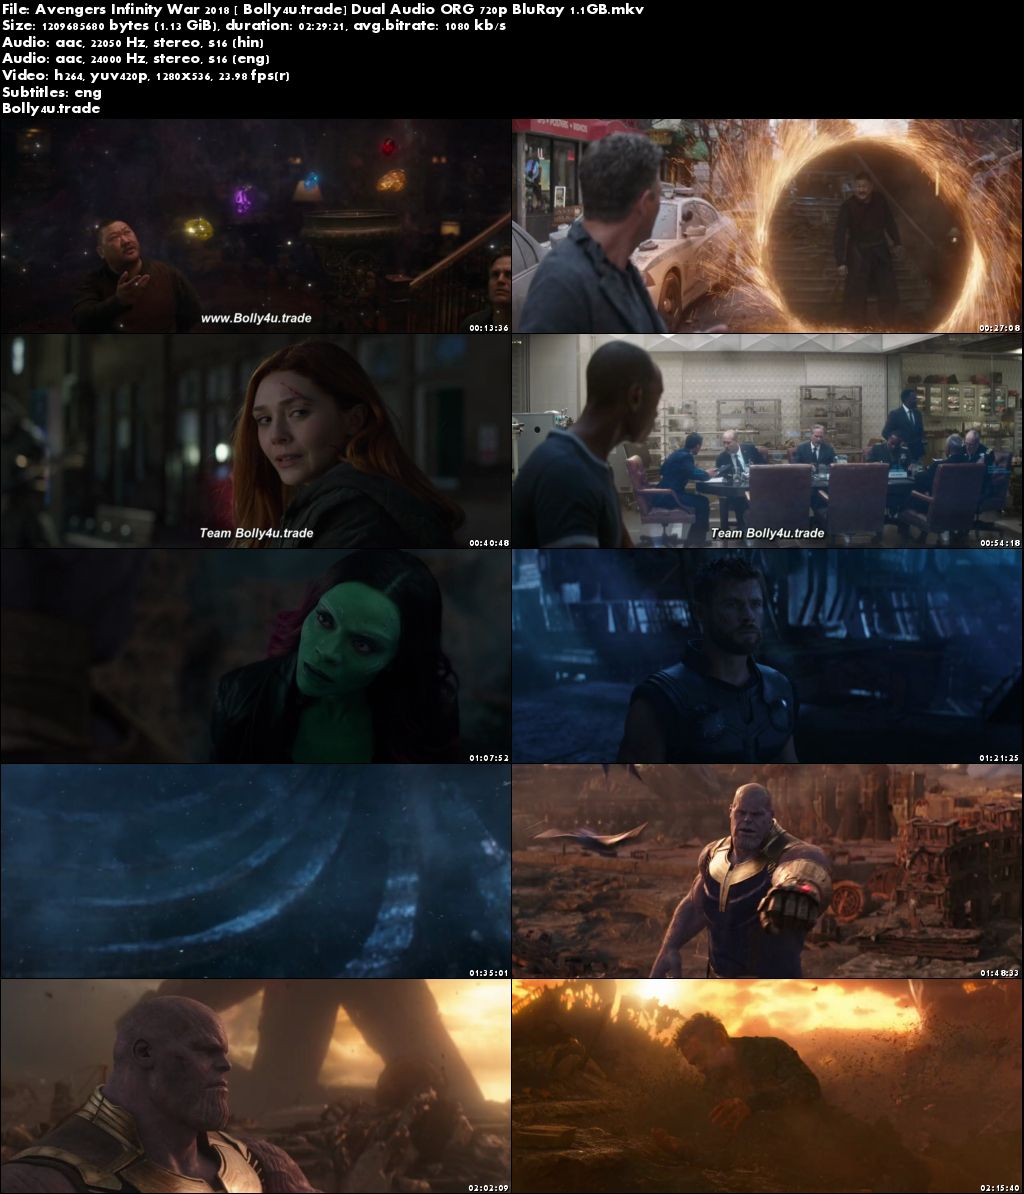 Avengers Infinity War 2018 BluRay 1GB Hindi Dubbed Dual Audio ORG 720p ESub Download